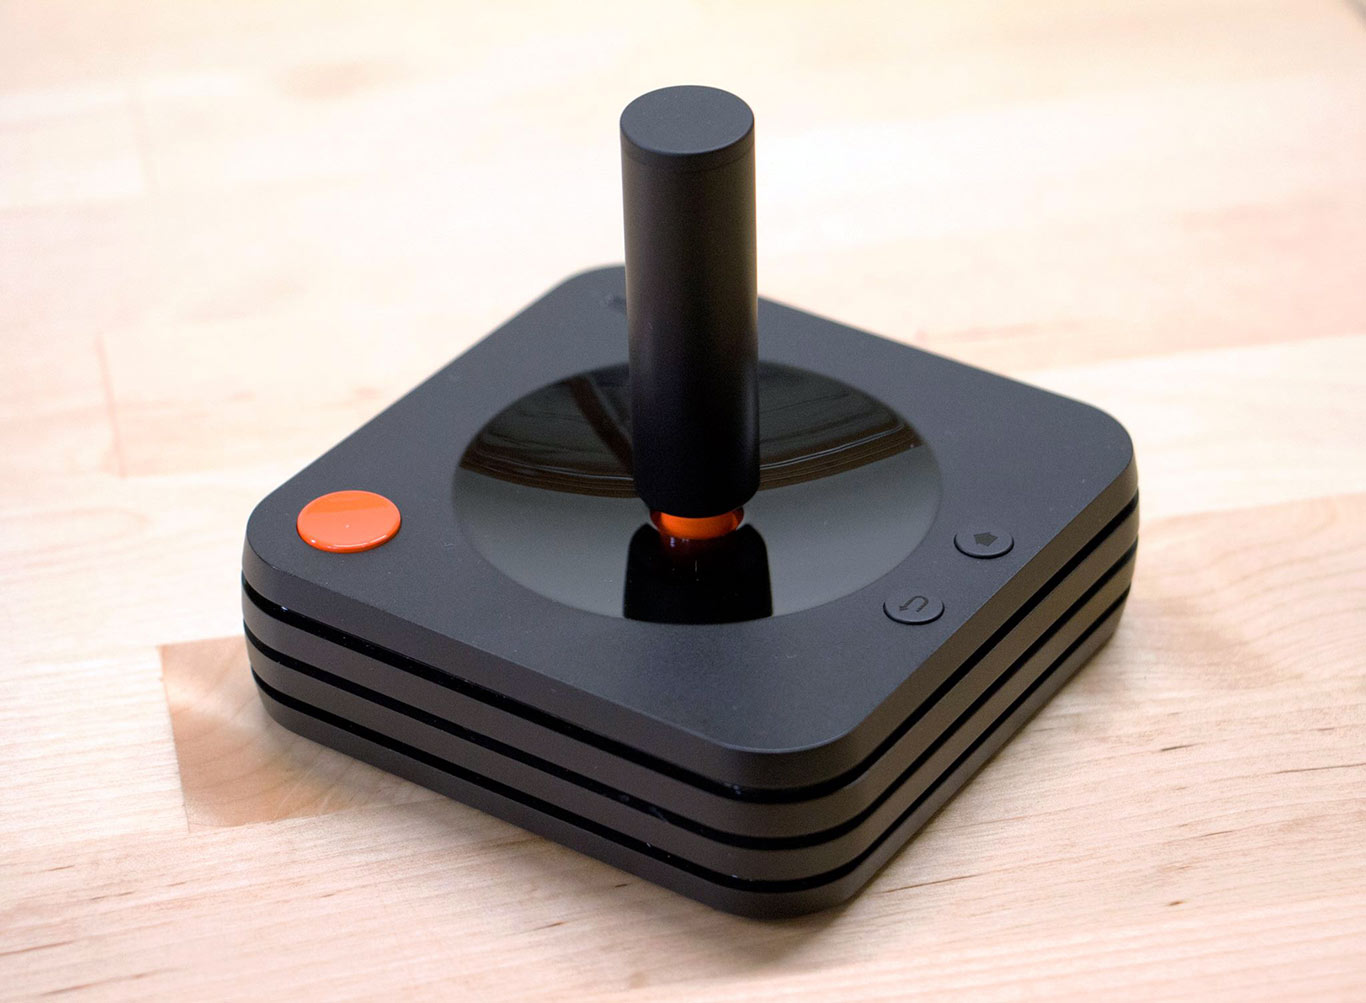 Ataribox Joystick Breaks Cover And It's As Beautifully Retro As You'd Expect